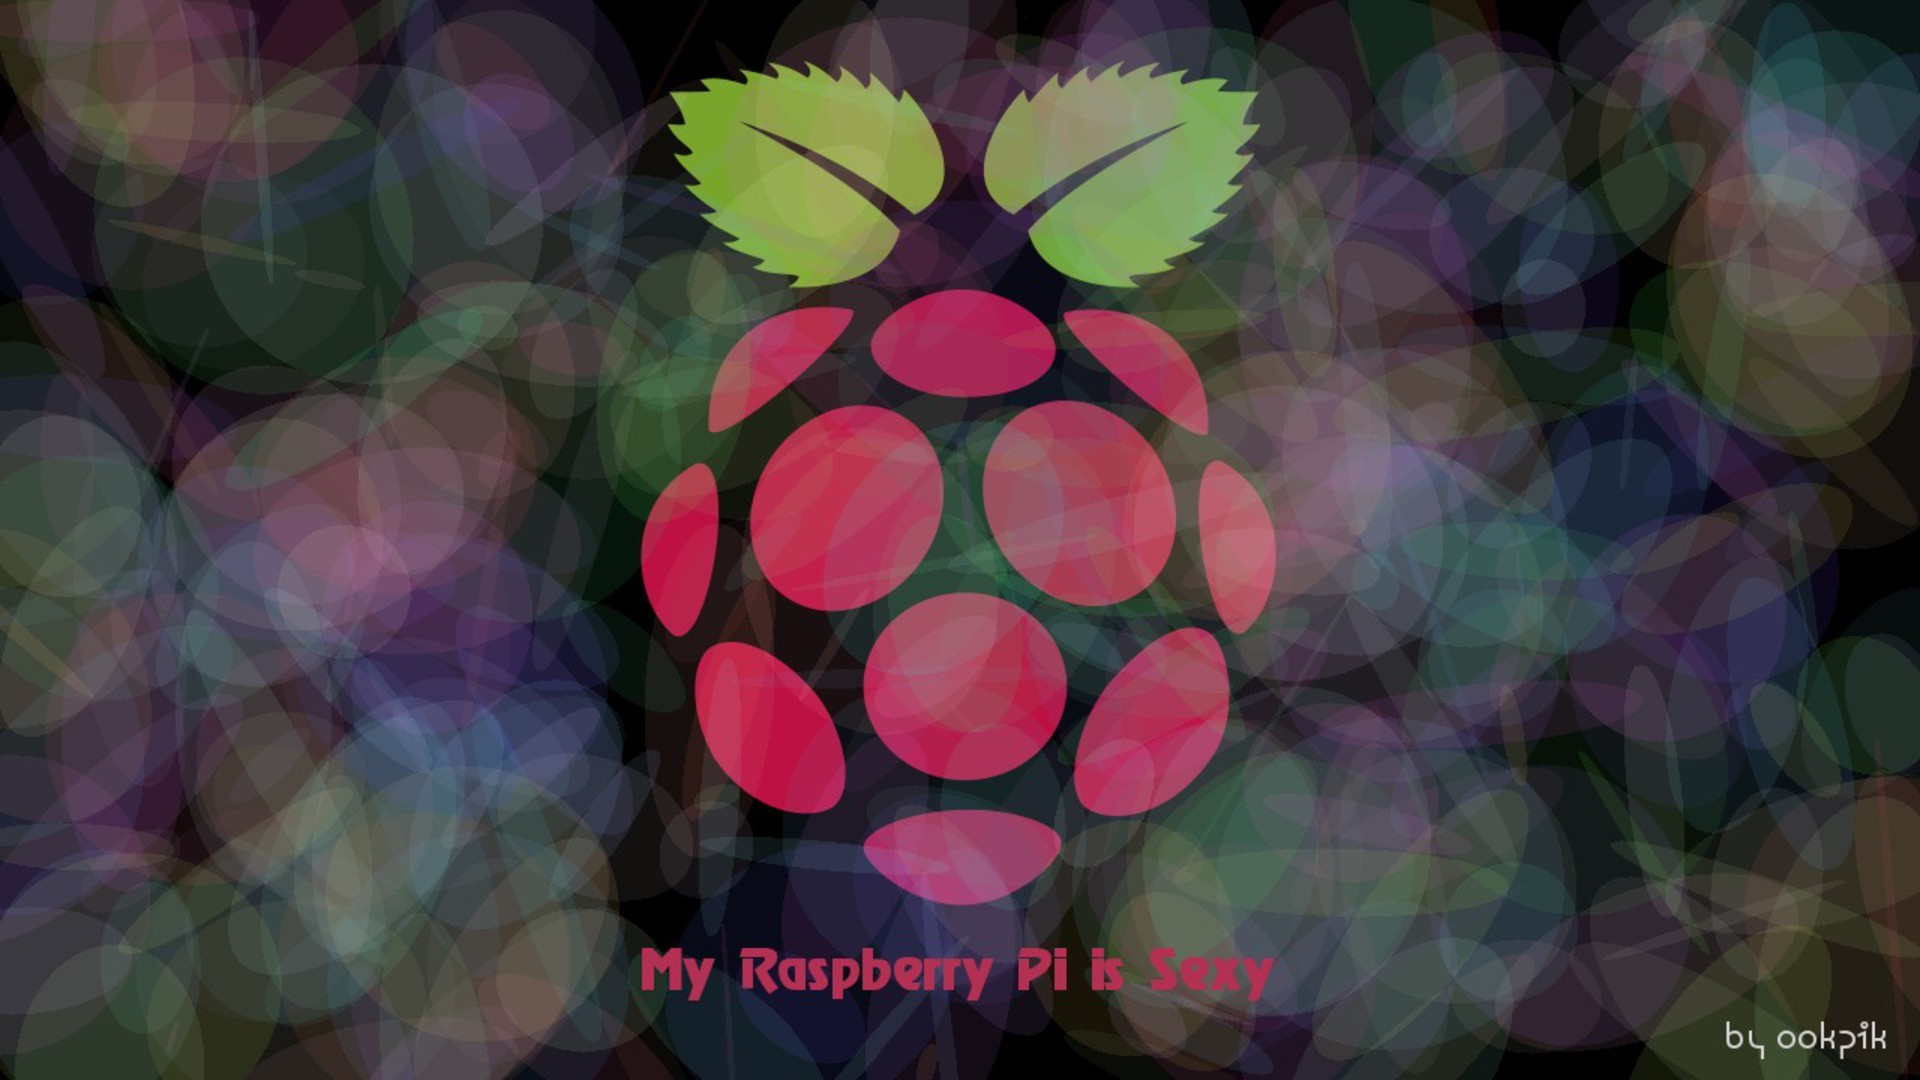 Raspberry Pi Wallpapers (62+ images)